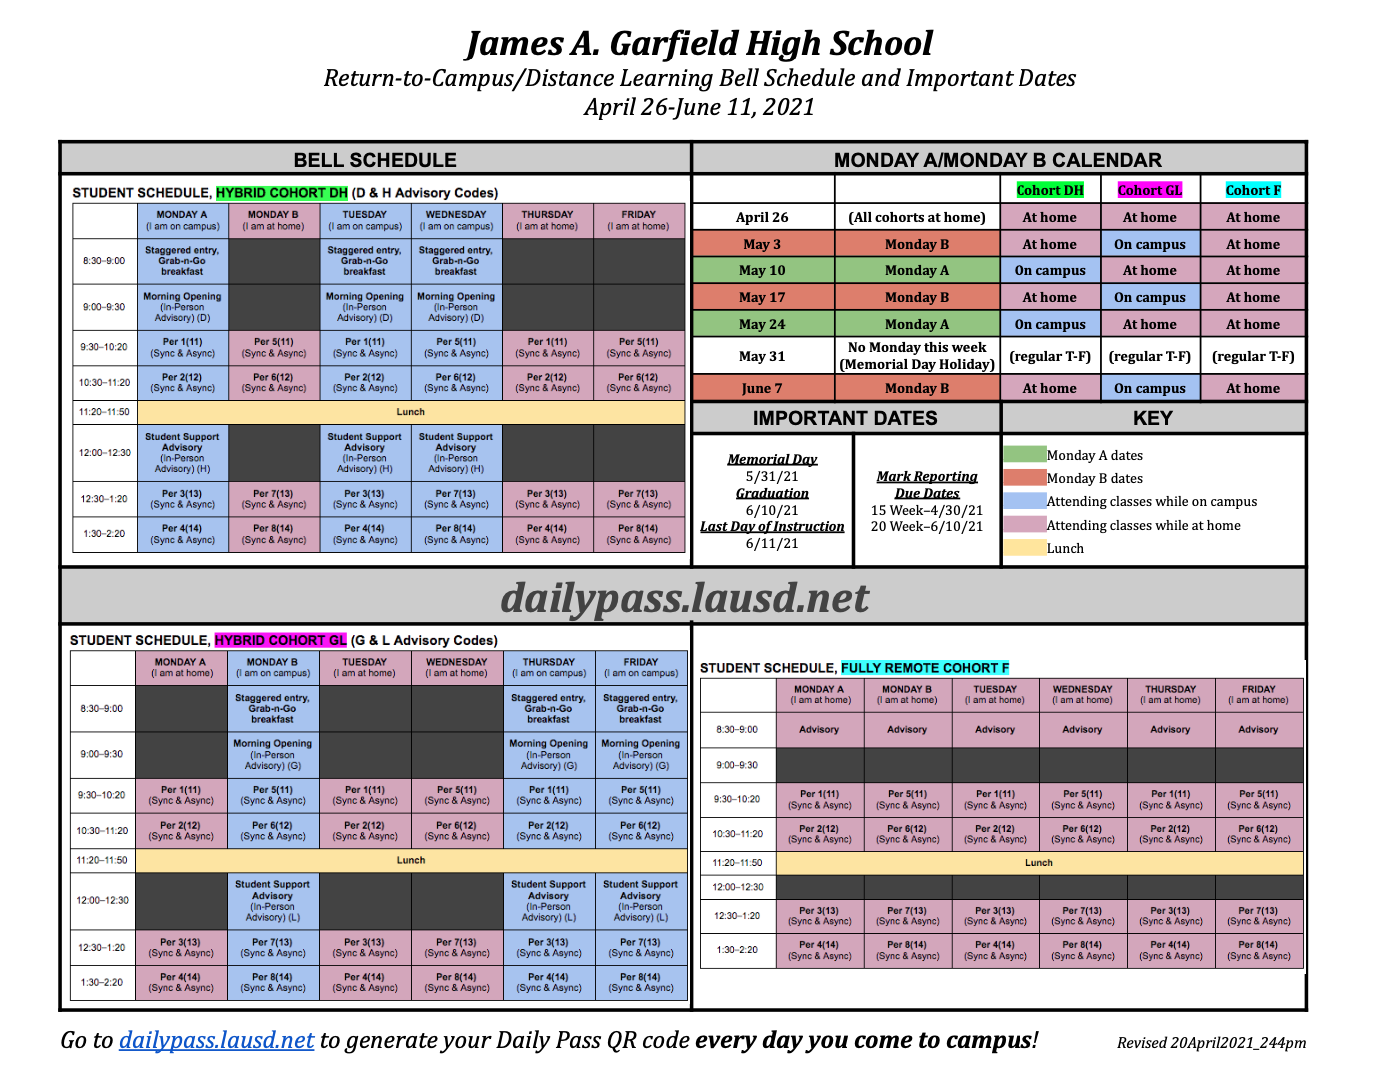 2021 Return to Campus Bell Schedule and Important Dates